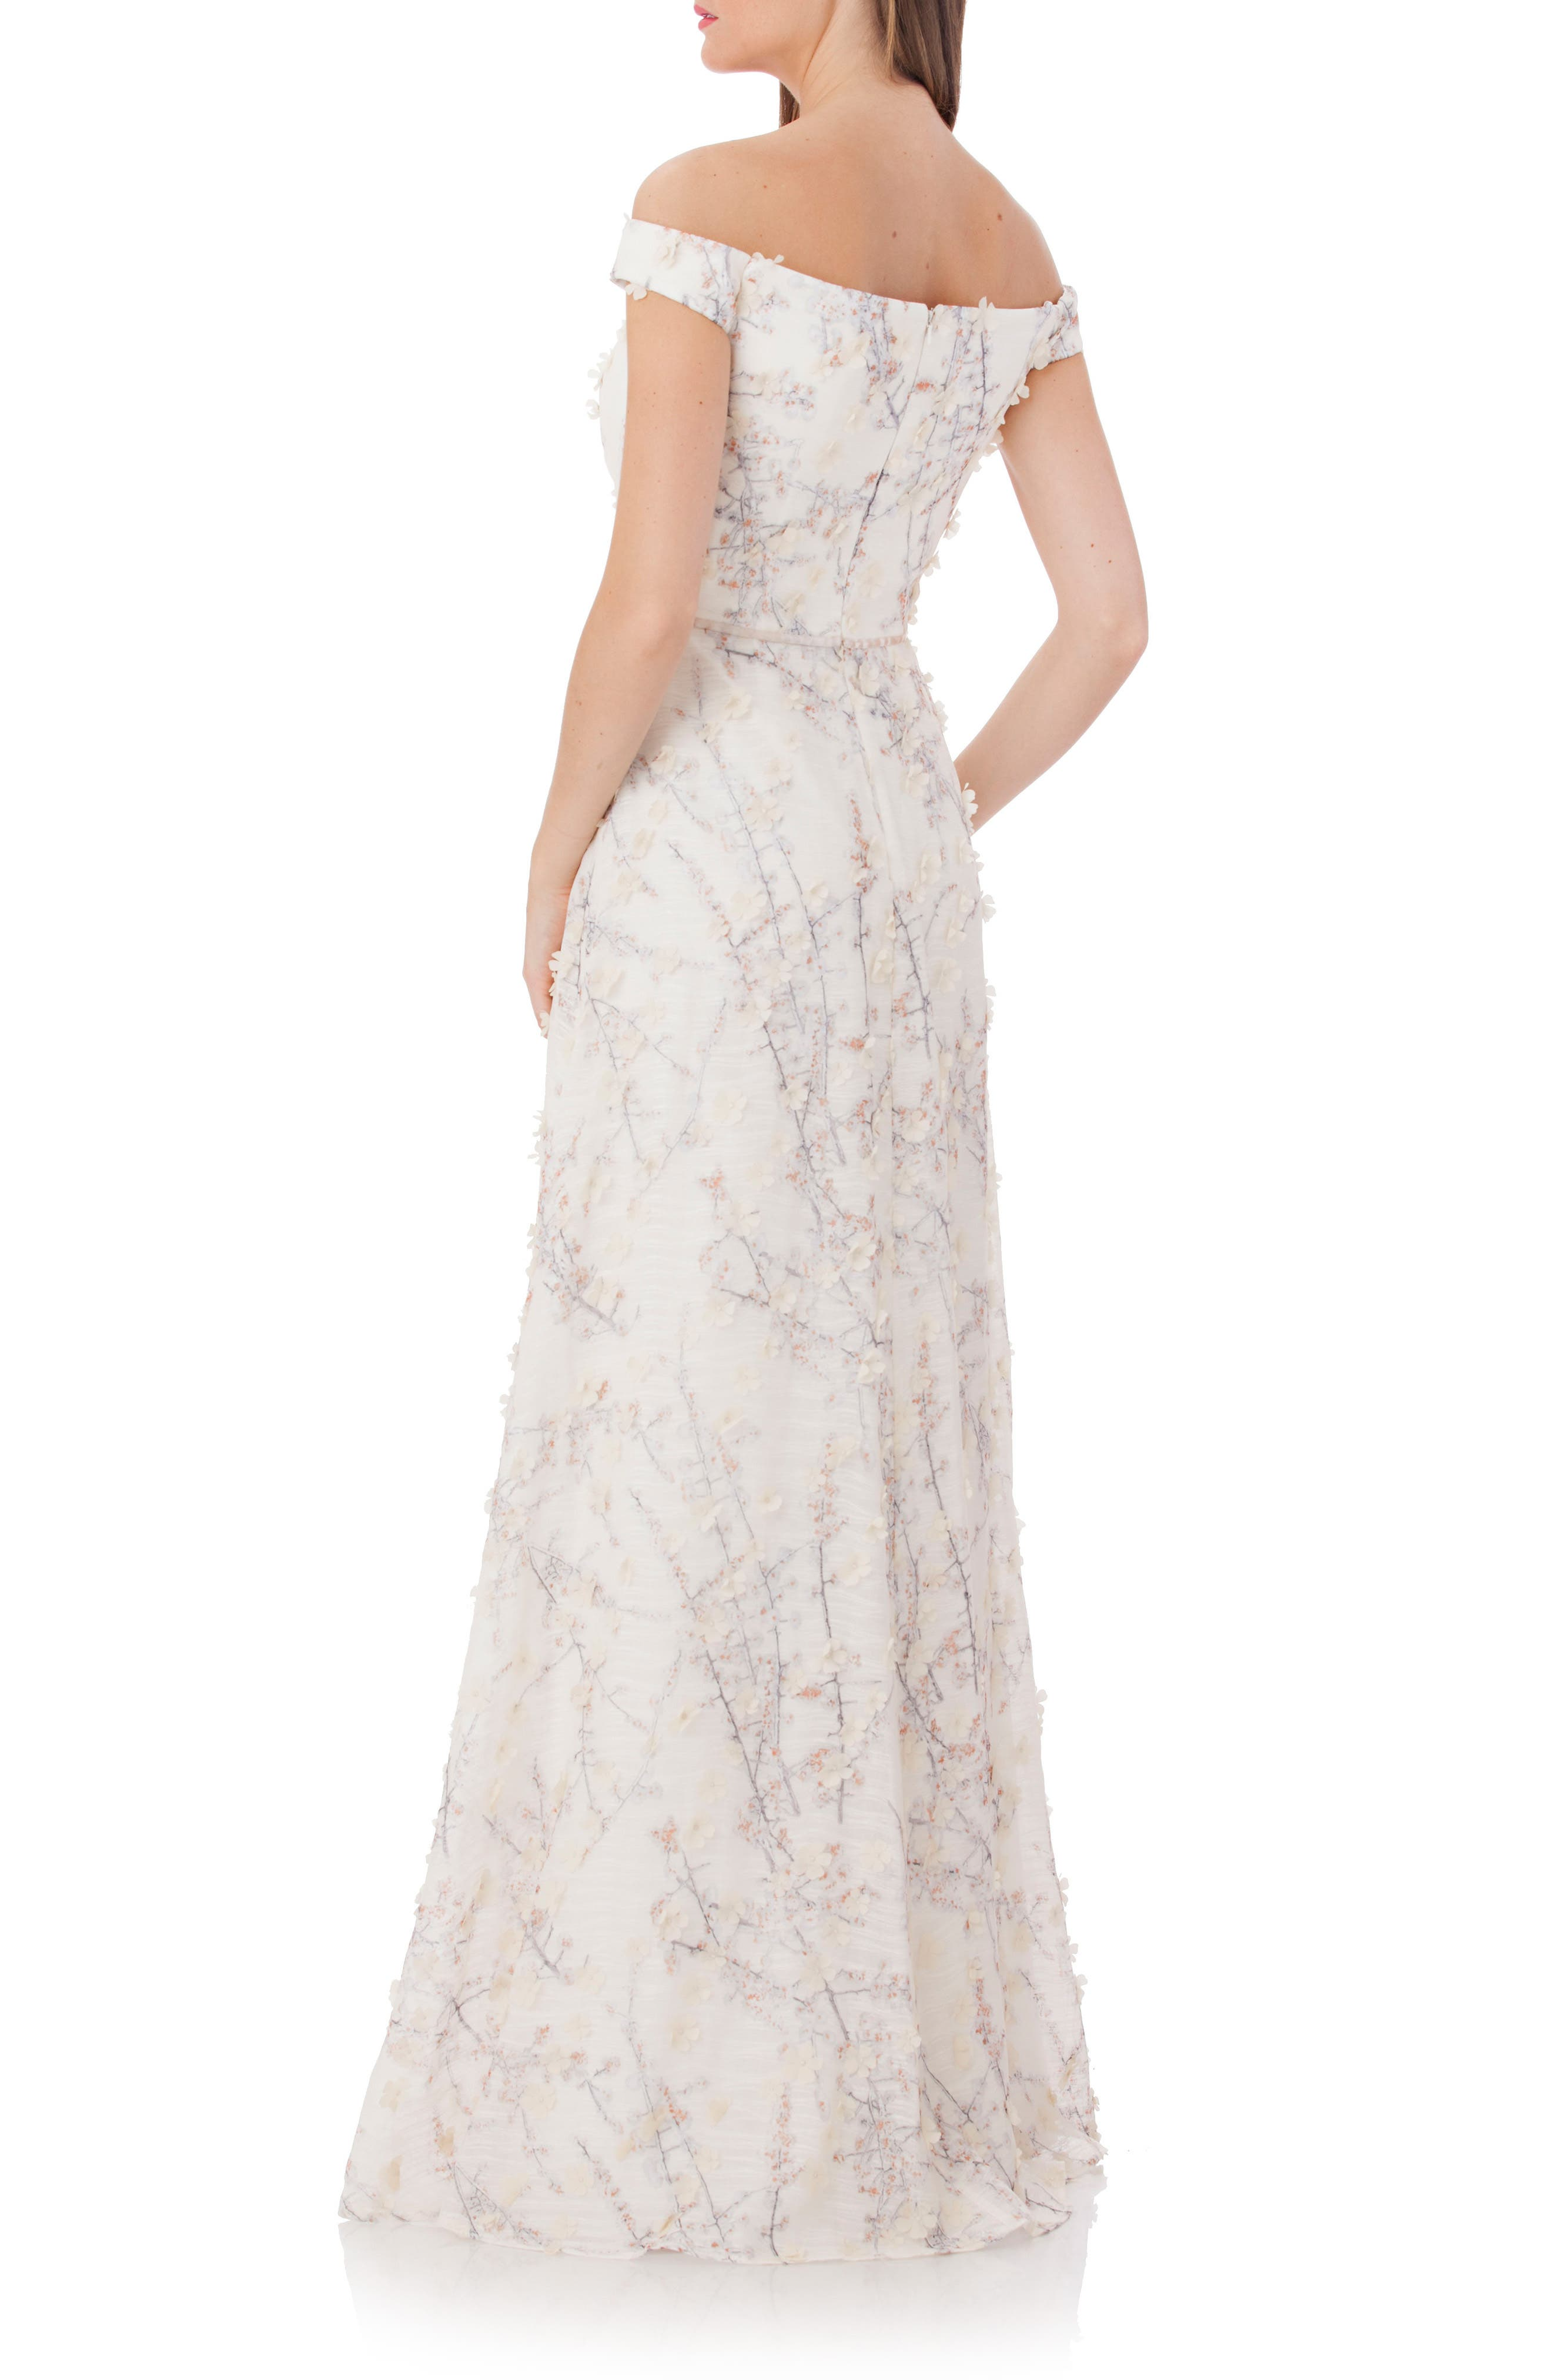 CARMEN MARC VALVO INFUSION,                             3D Embroidery Off the Shoulder Gown,                             Alternate thumbnail 2, color,                             270